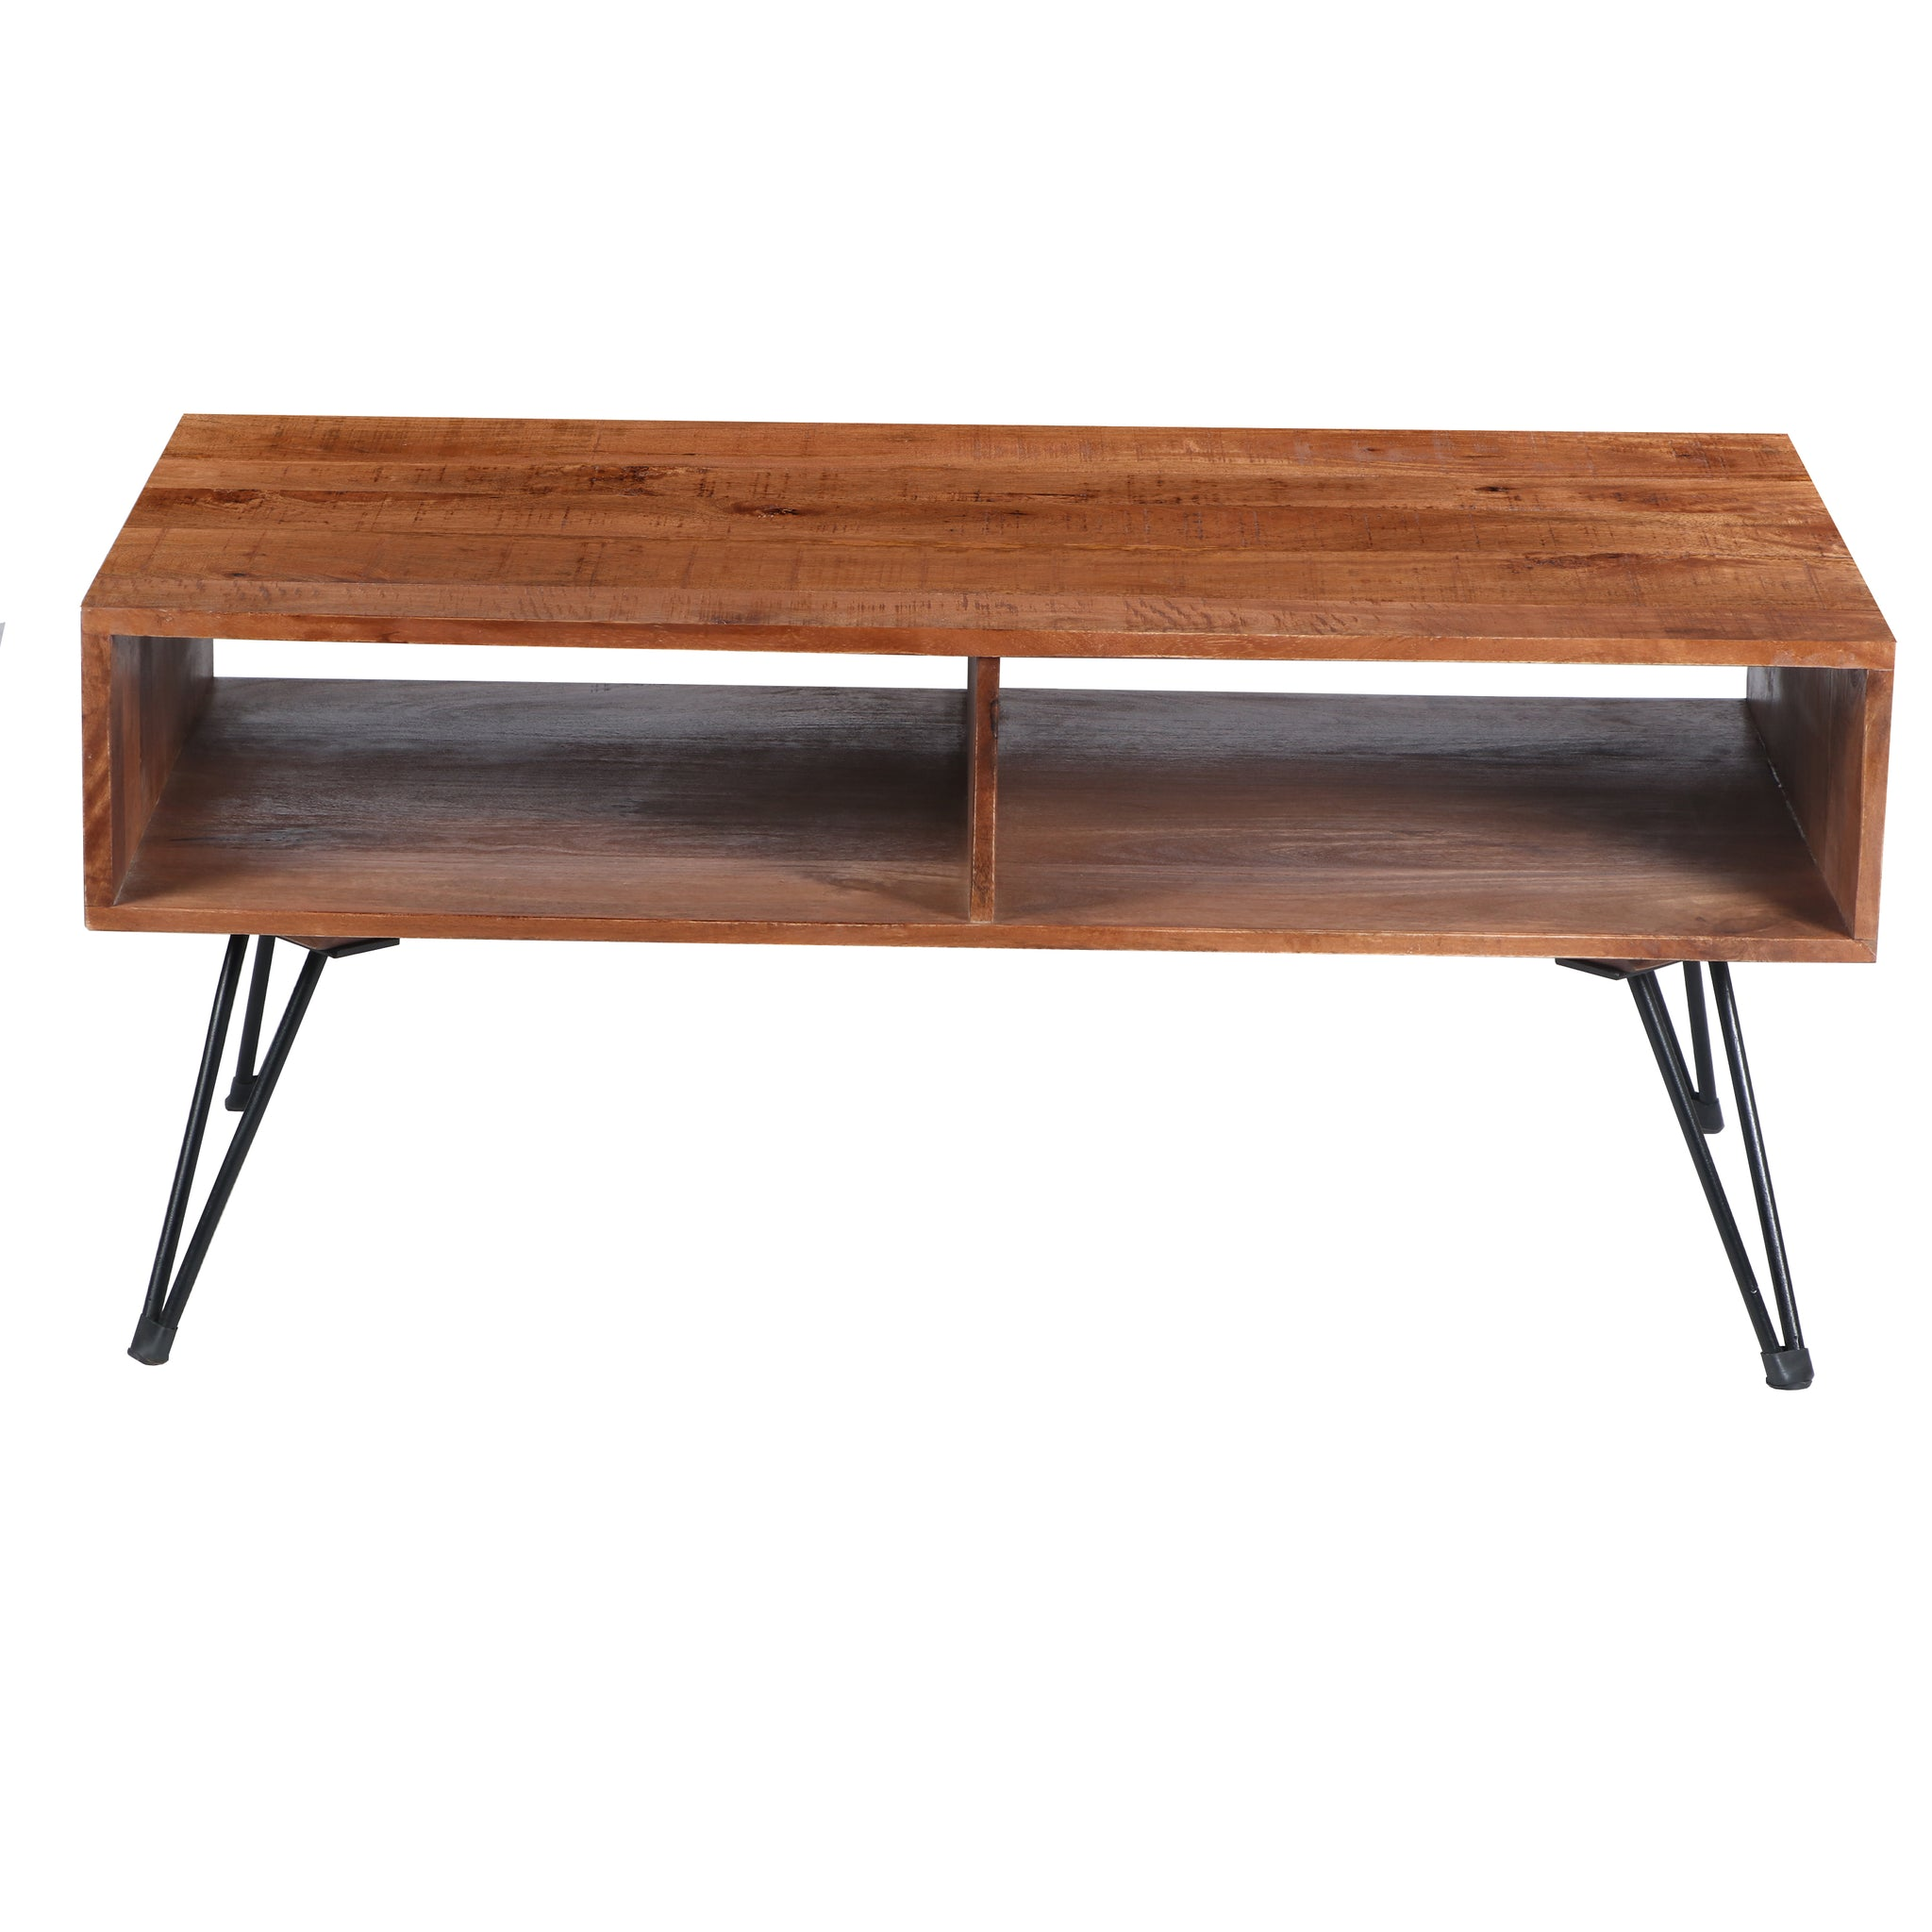 The Urban Port UPT-195121 Mango Wood Coffee Table W/ Metal Legs